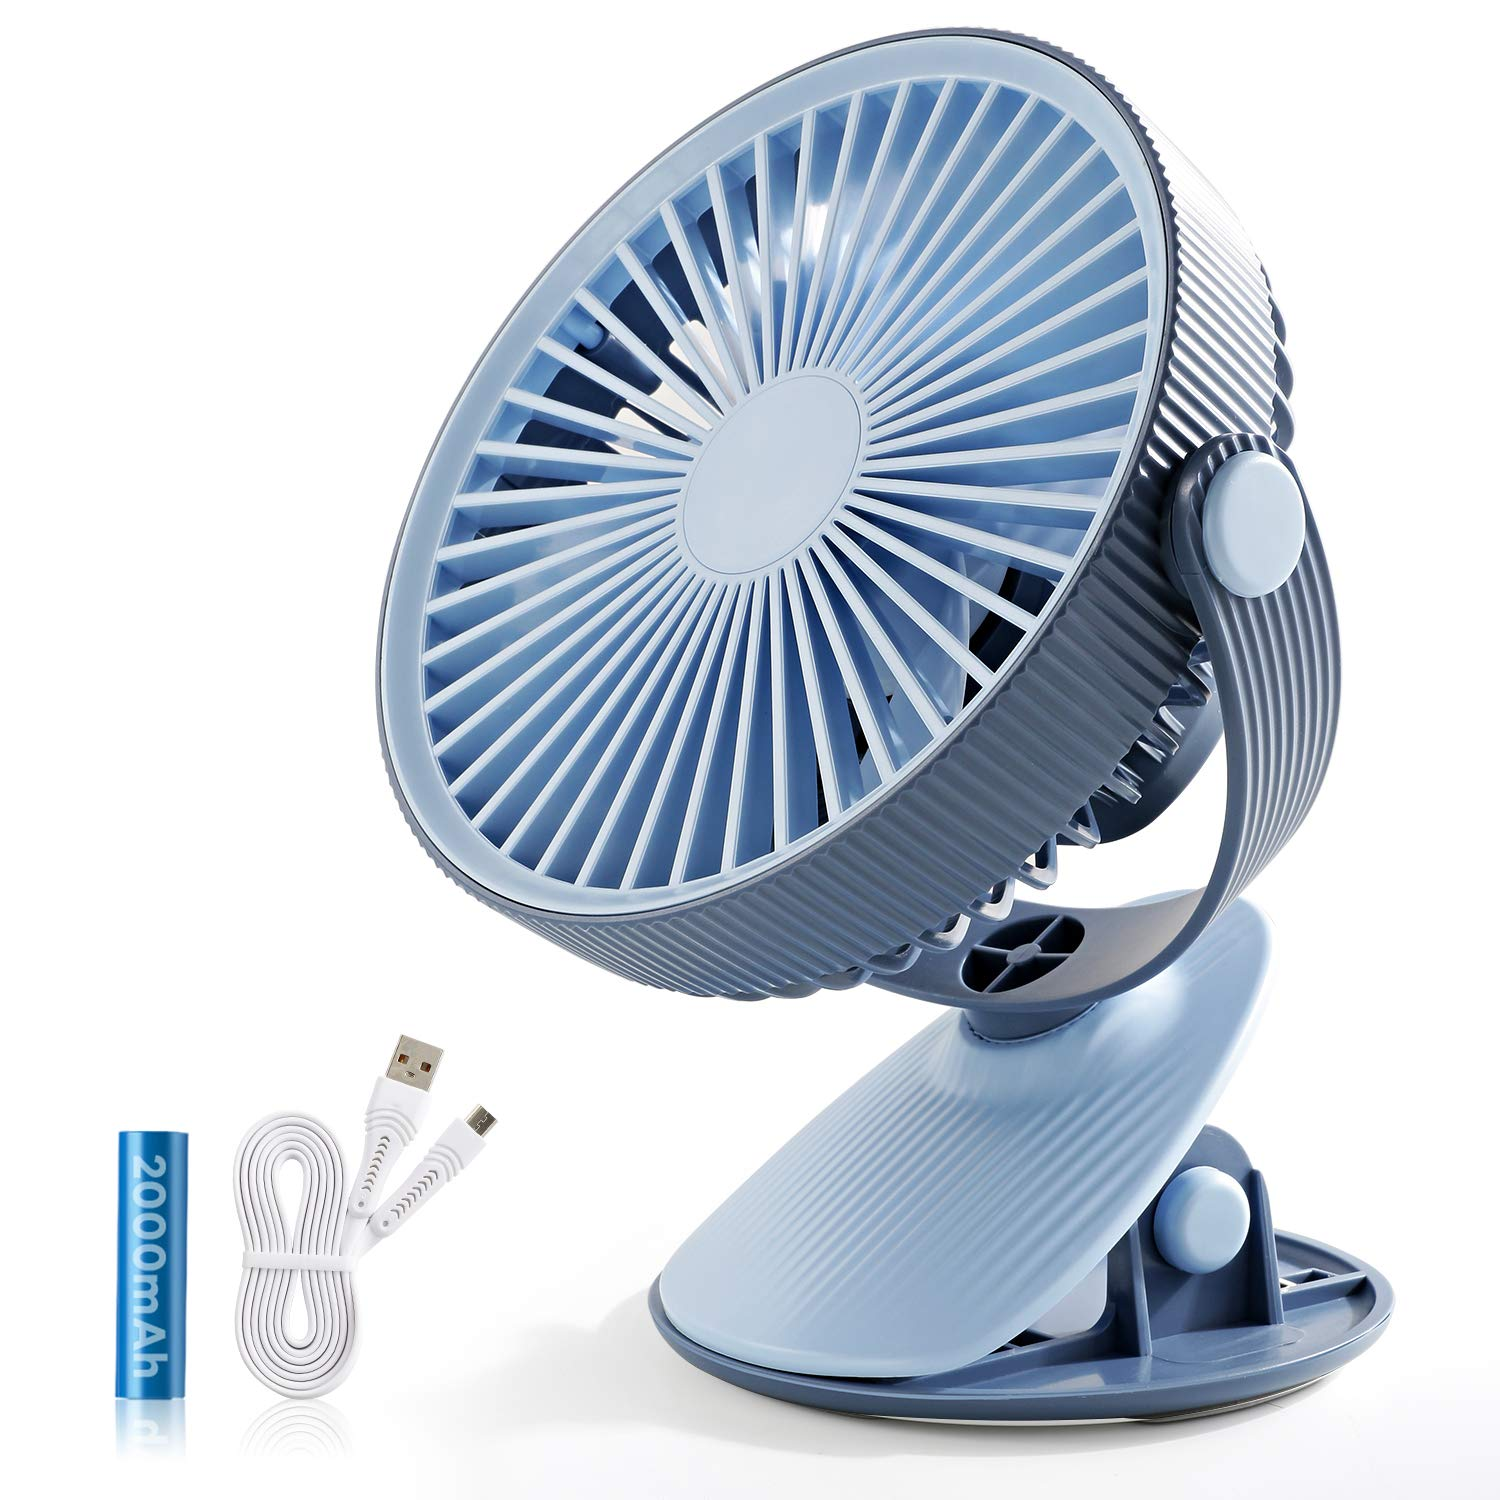 SmartDevil Battery Operated Clip on Fan for Stroller Home Office Camping Outdoors,Dual-use Portable 3-Speed Desktop Clip Fan, Rechargeable, Quiet Operation (Blue) by SmartDevil